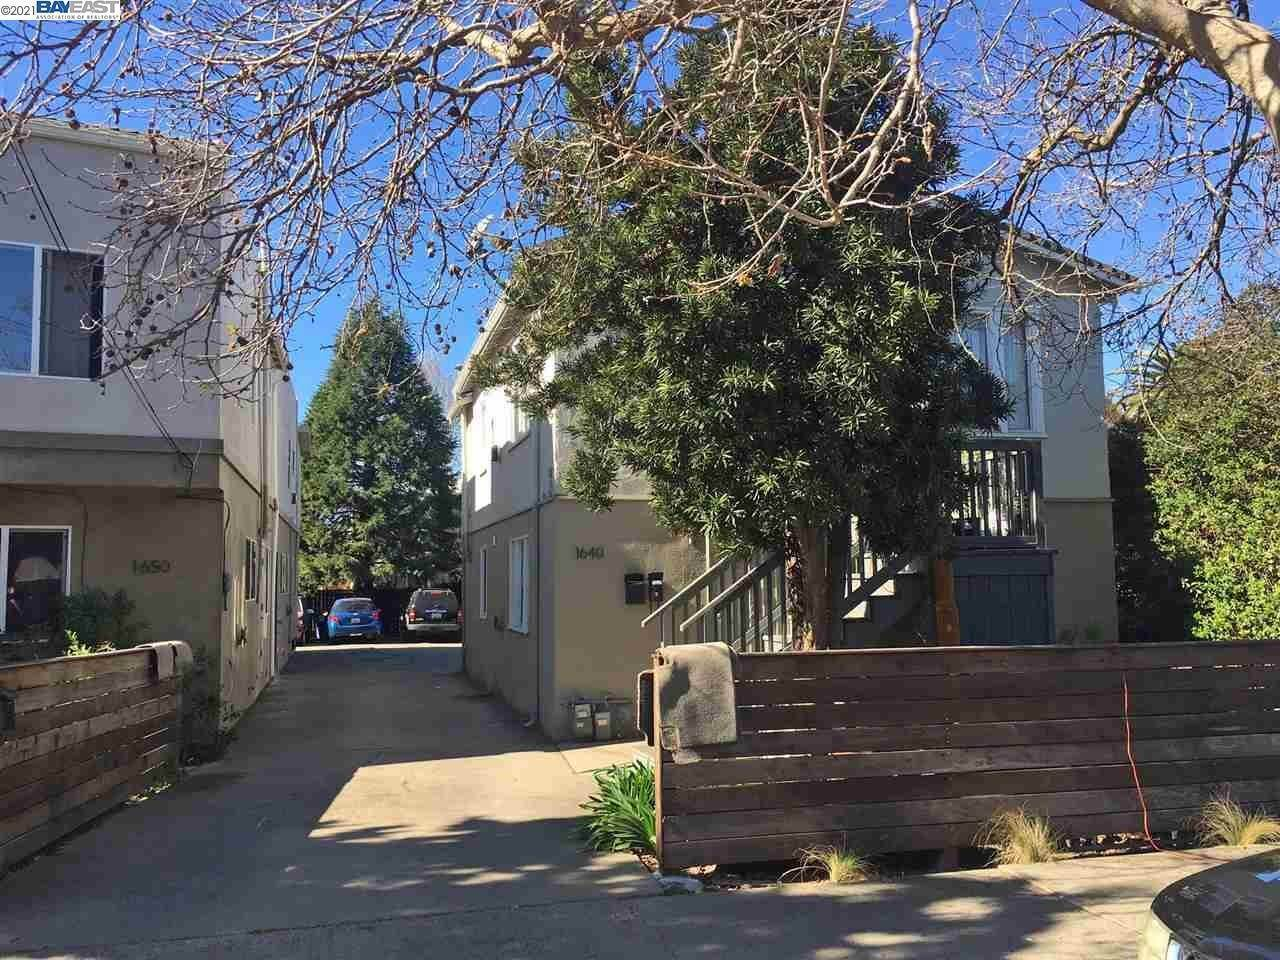 Multi-Family Homes for Sale at 1640 7Th Street Berkeley, California 94710 United States